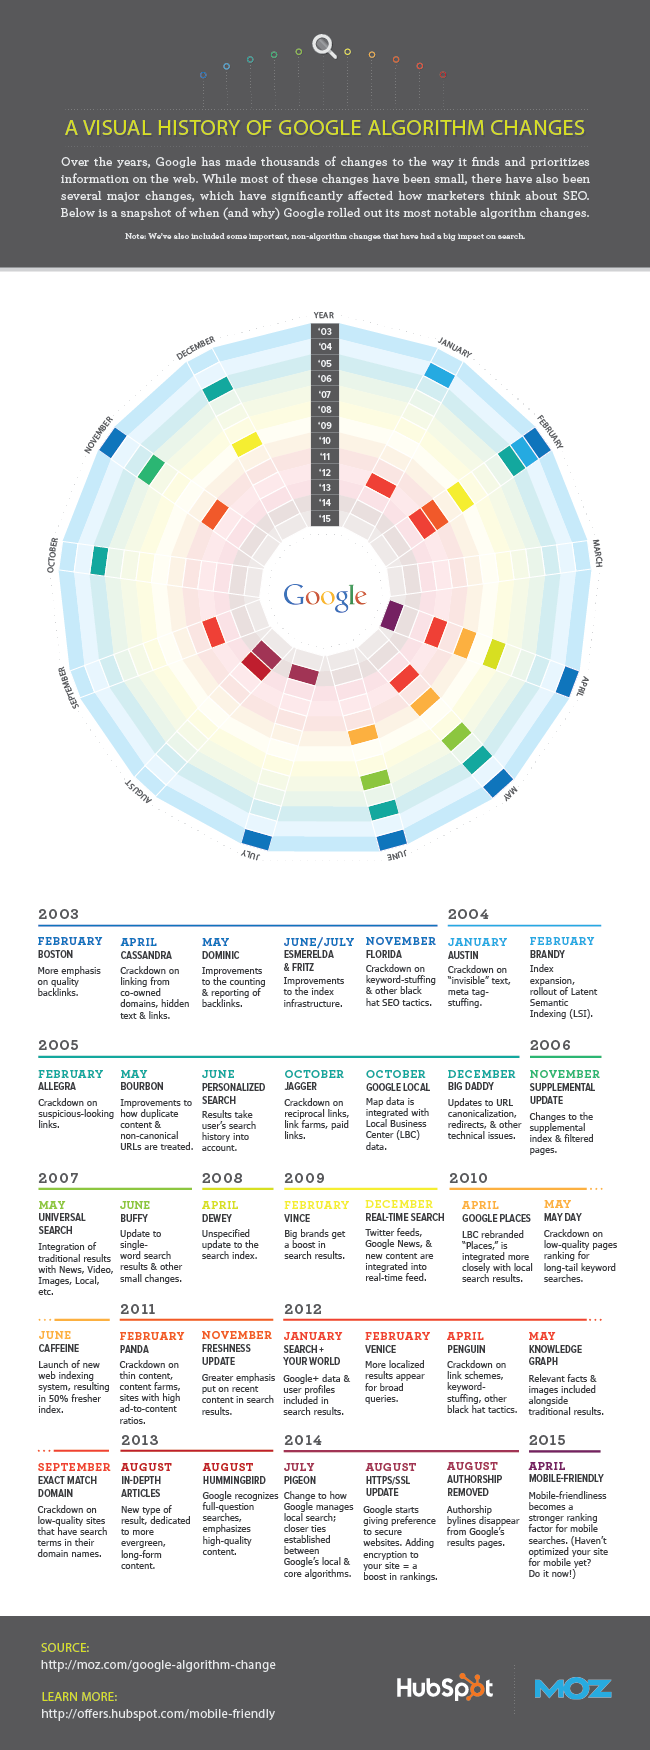 Google Algorithm Updates and Changes 1998-2015 Infographic